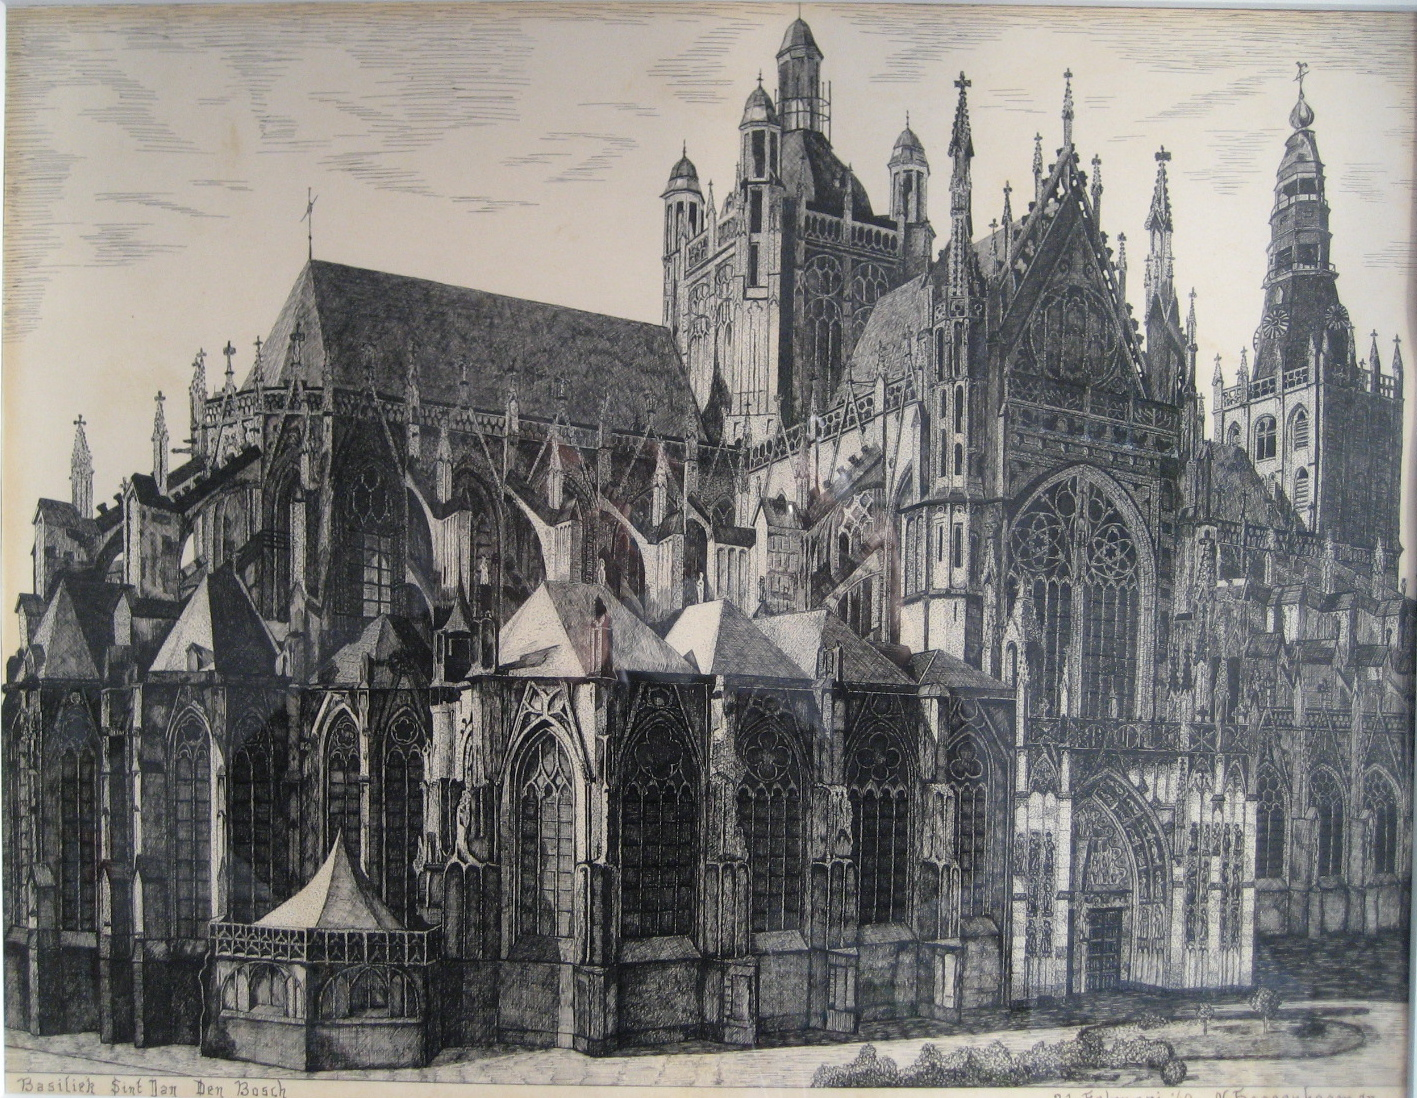 500 - Saint Johns Cathedrale,  Den Bosch - N.Hoogenboom Jr. [80x70]